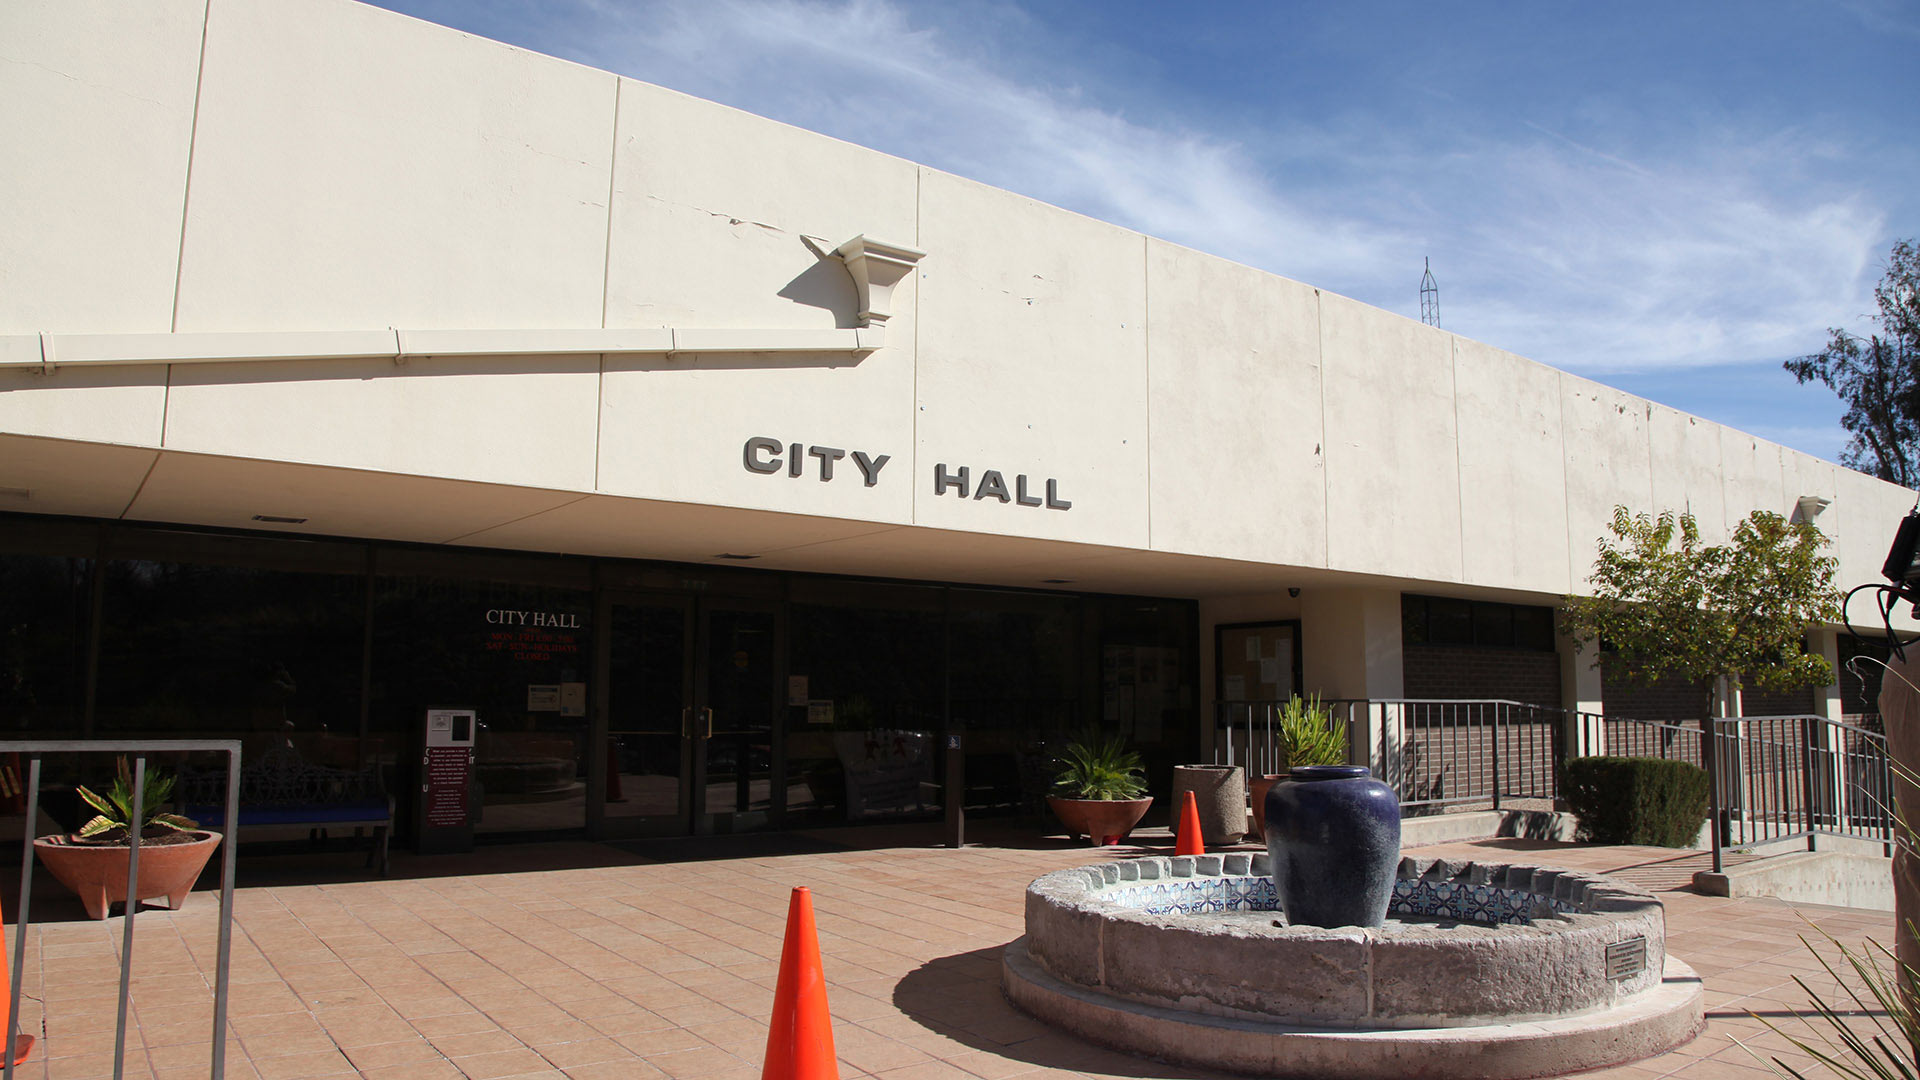 City Hall in Nogales, Arizona.